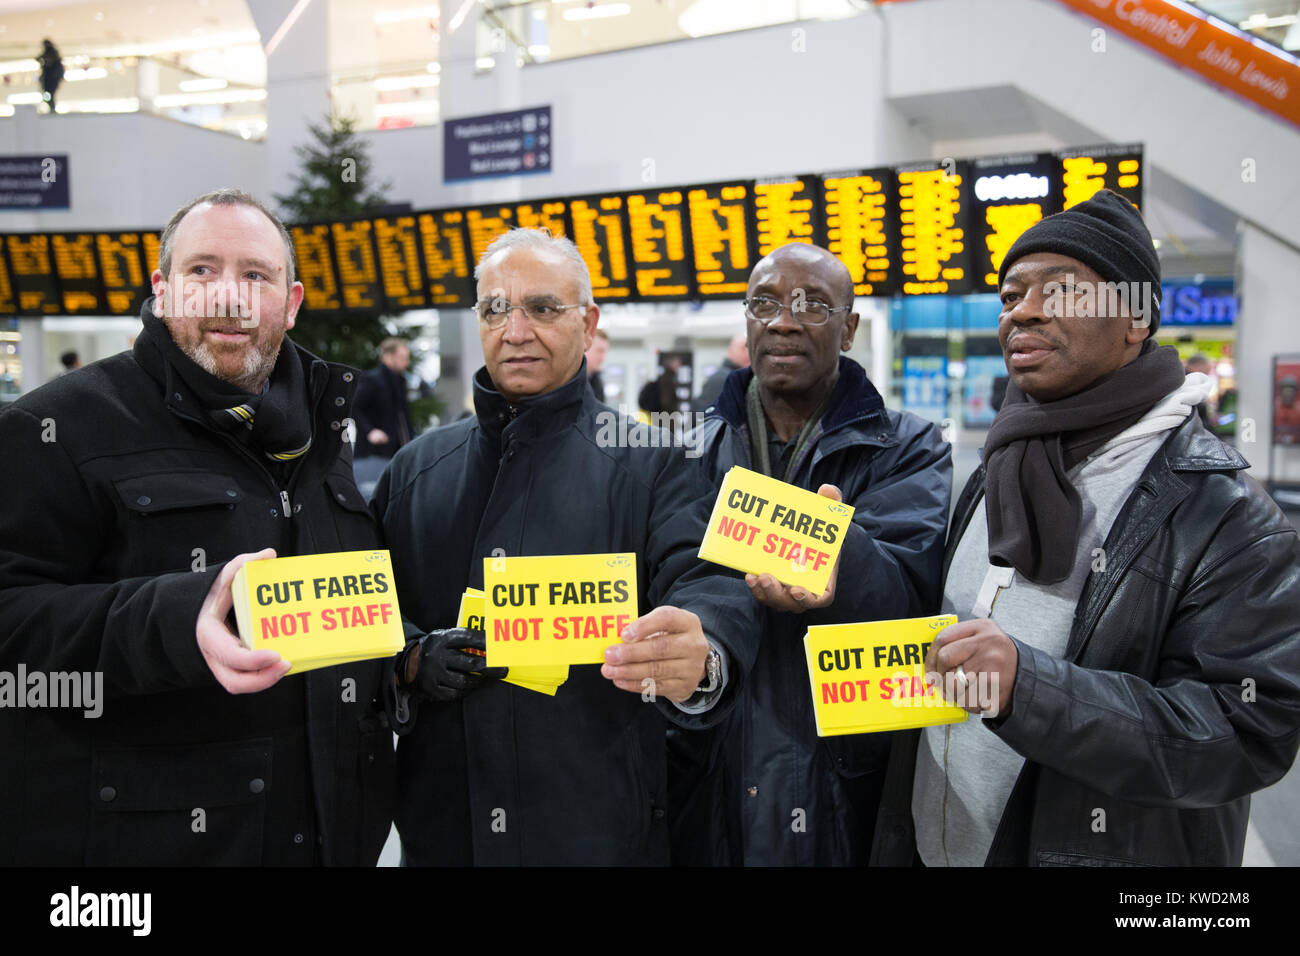 Members of the Birmingham Rail Group protesting about rail fare increases pictured at Grand Central, New Street - Stock Image